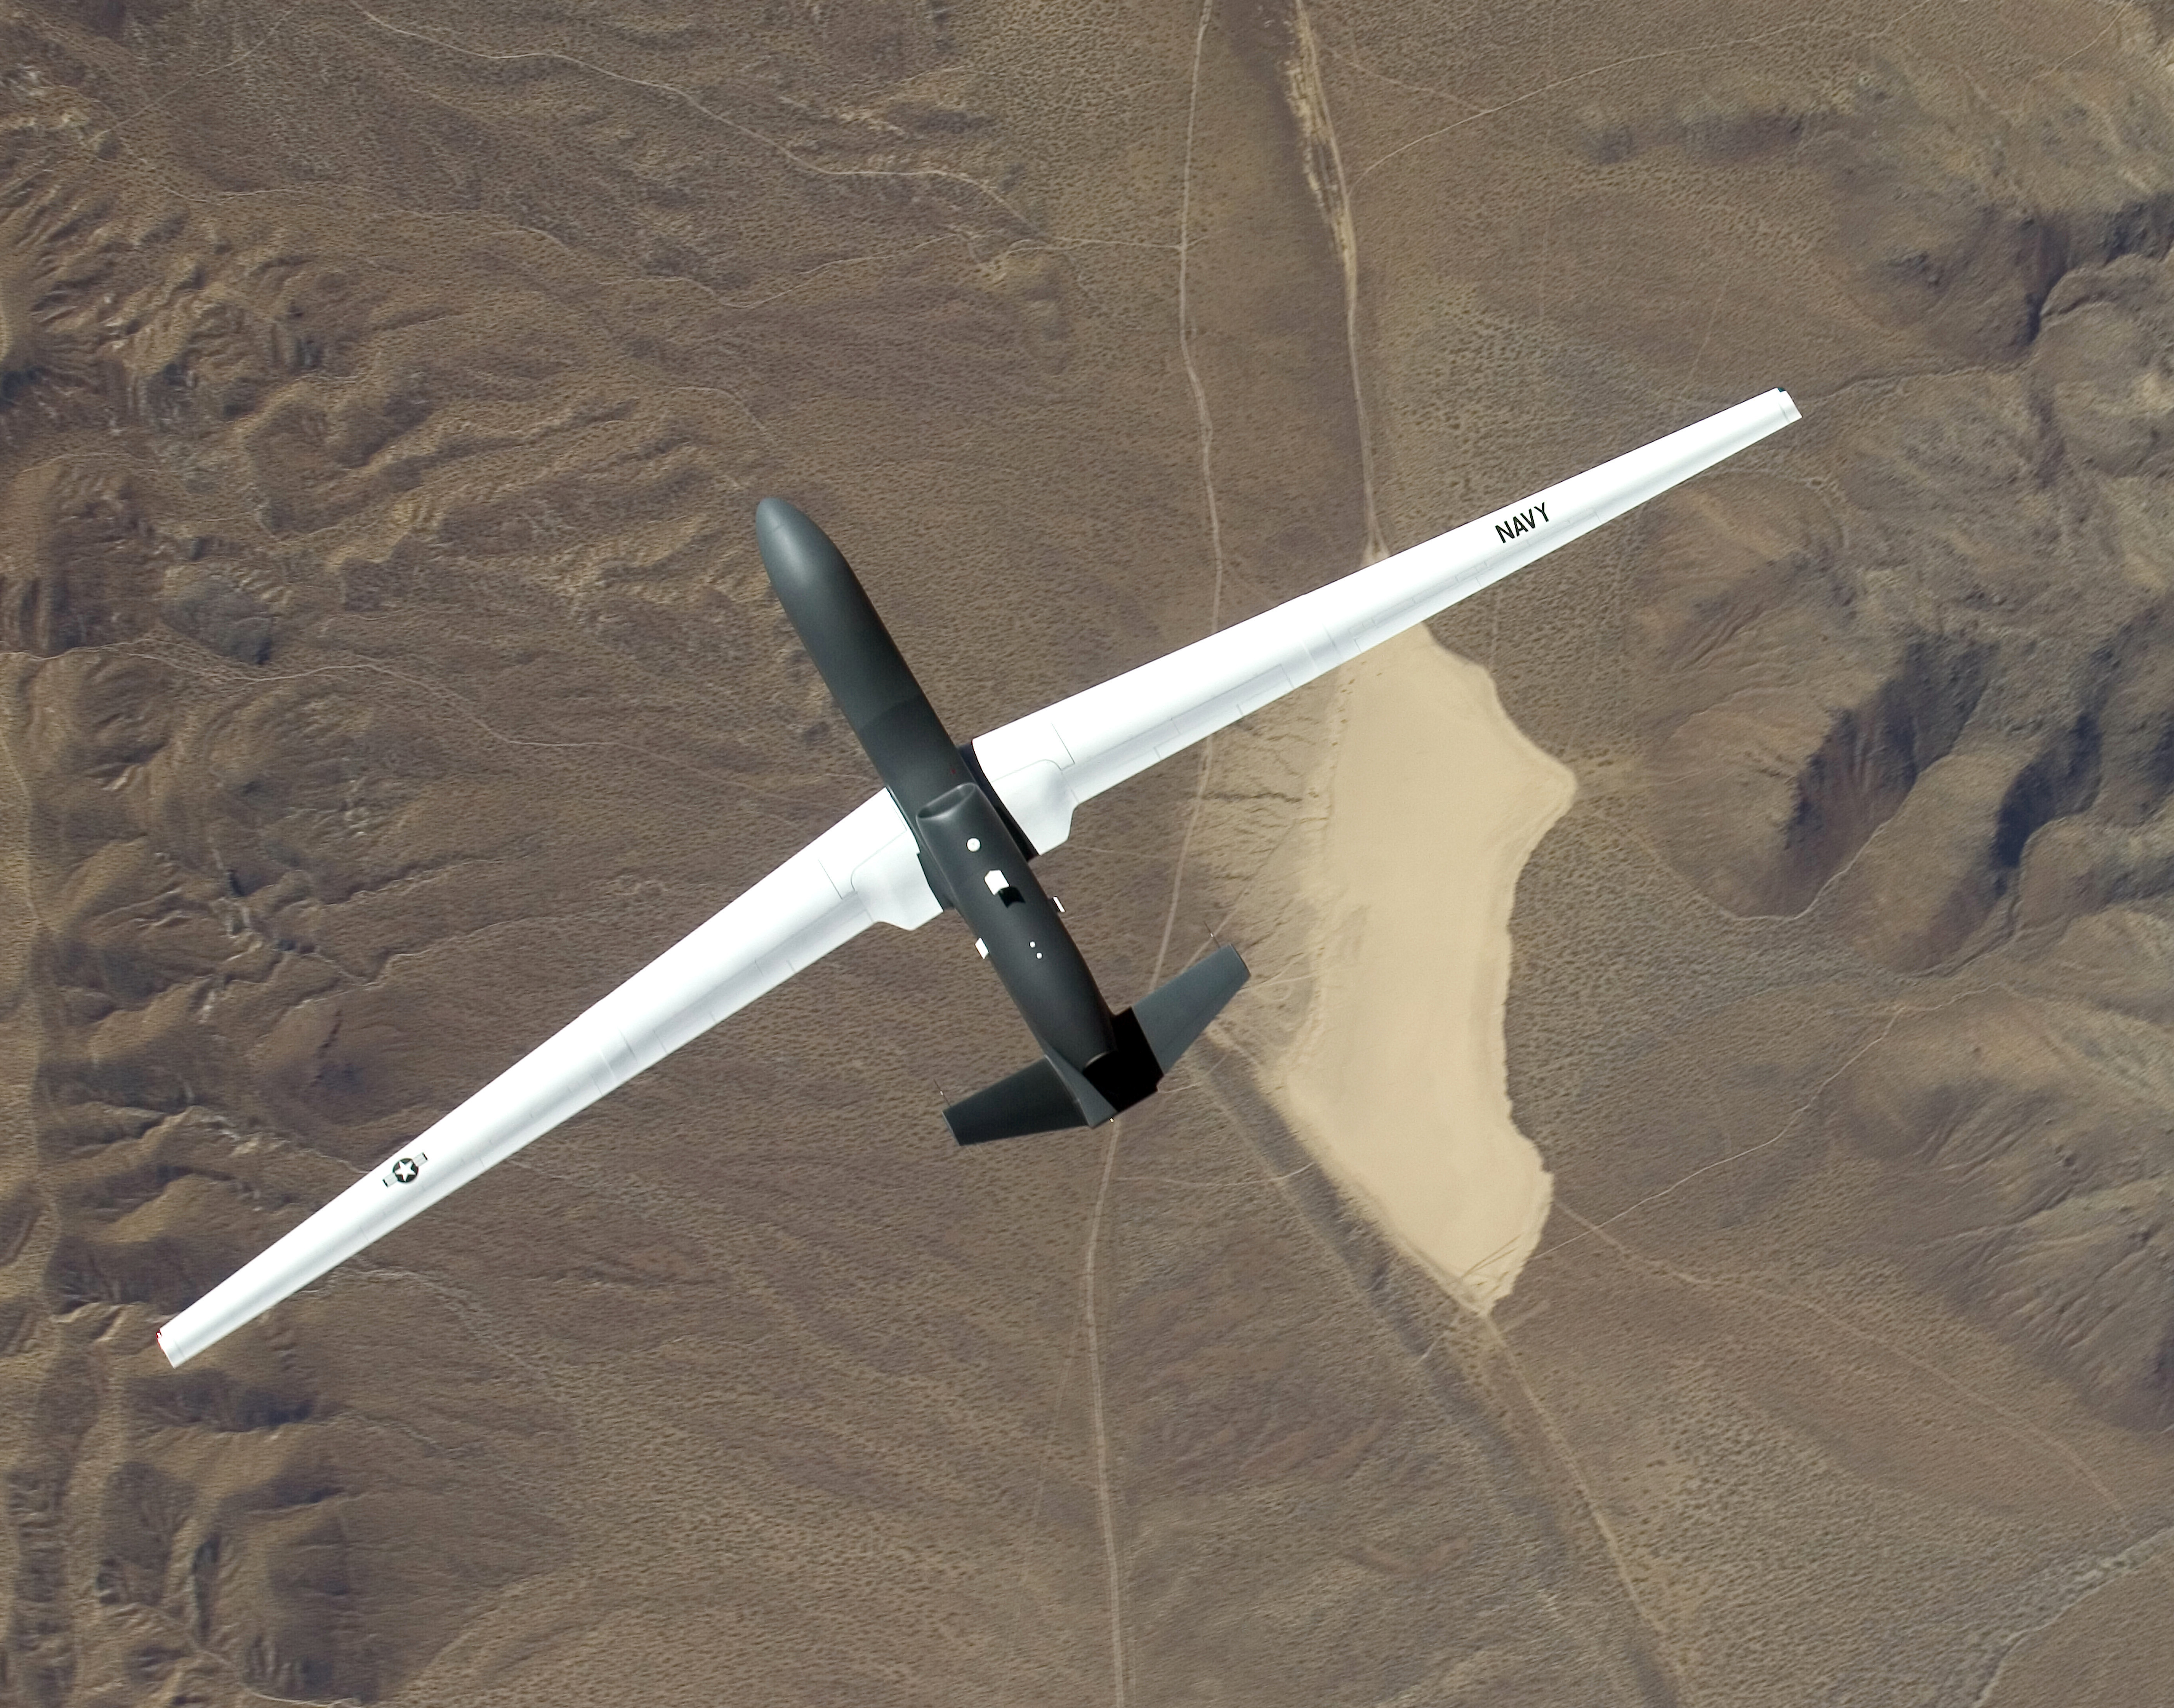 Aircraft military Navy uav HD Wallpaper